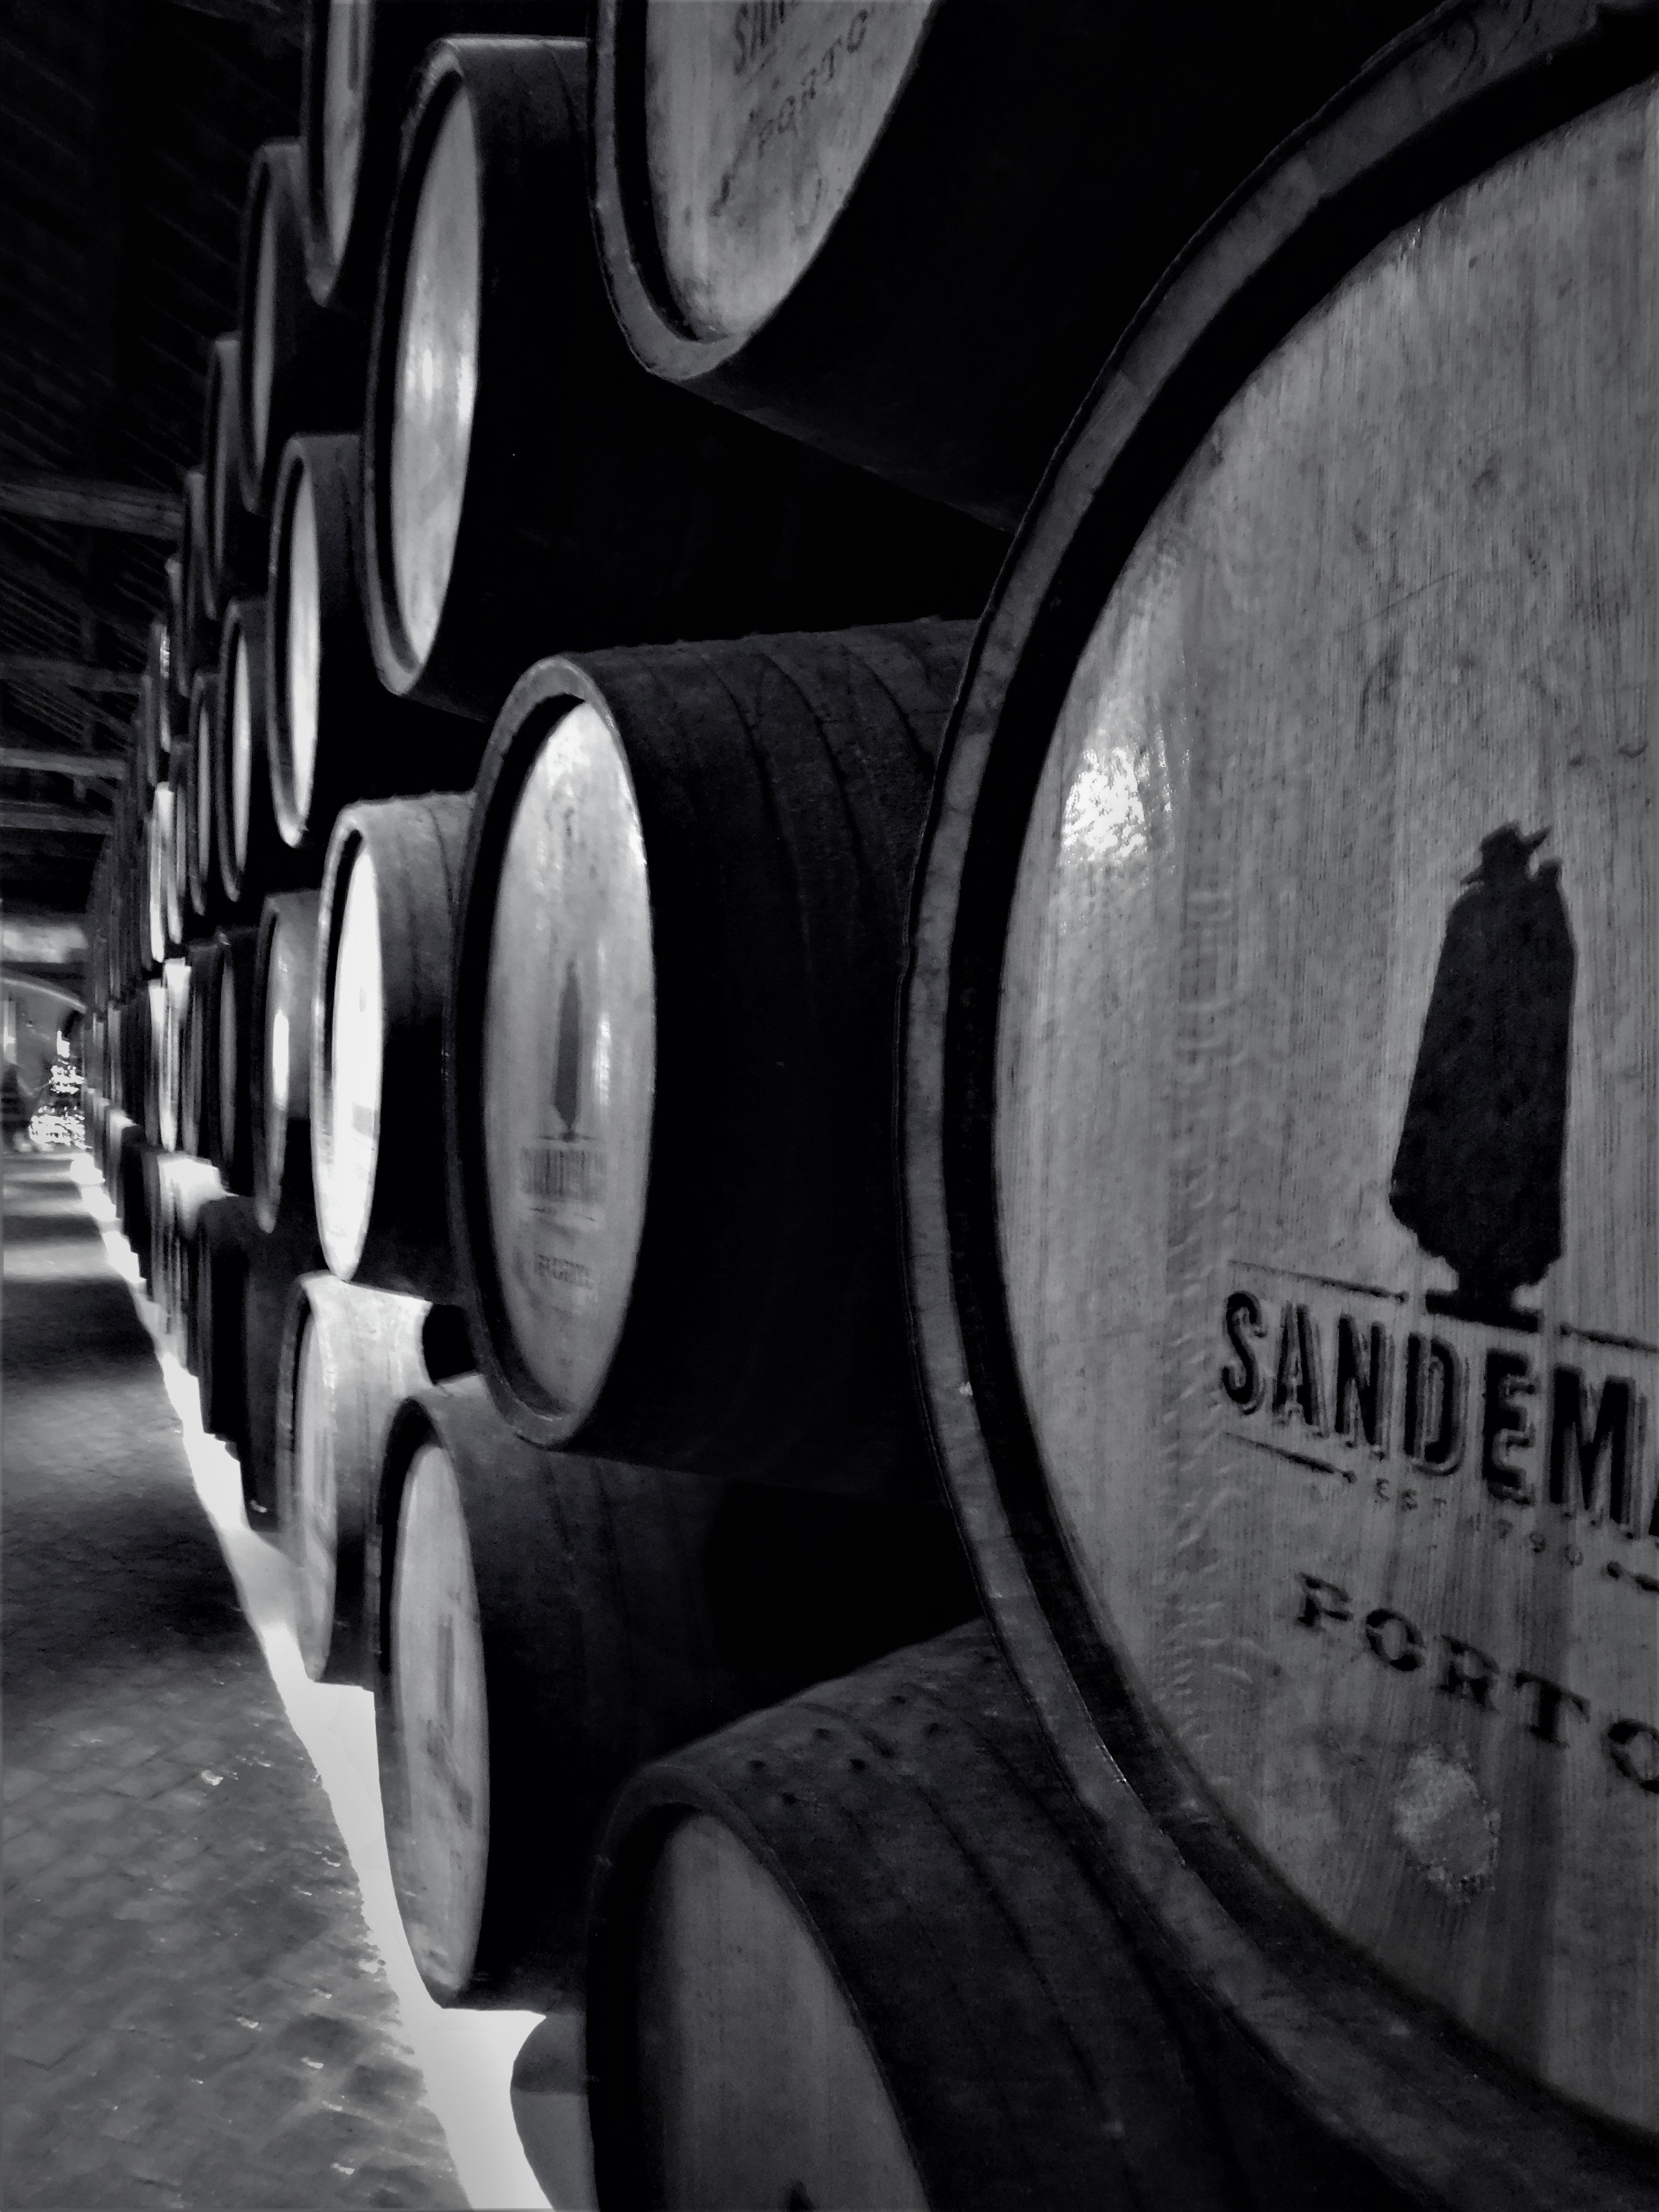 48 Hours in Porto: A wine lodge tour at Sandeman